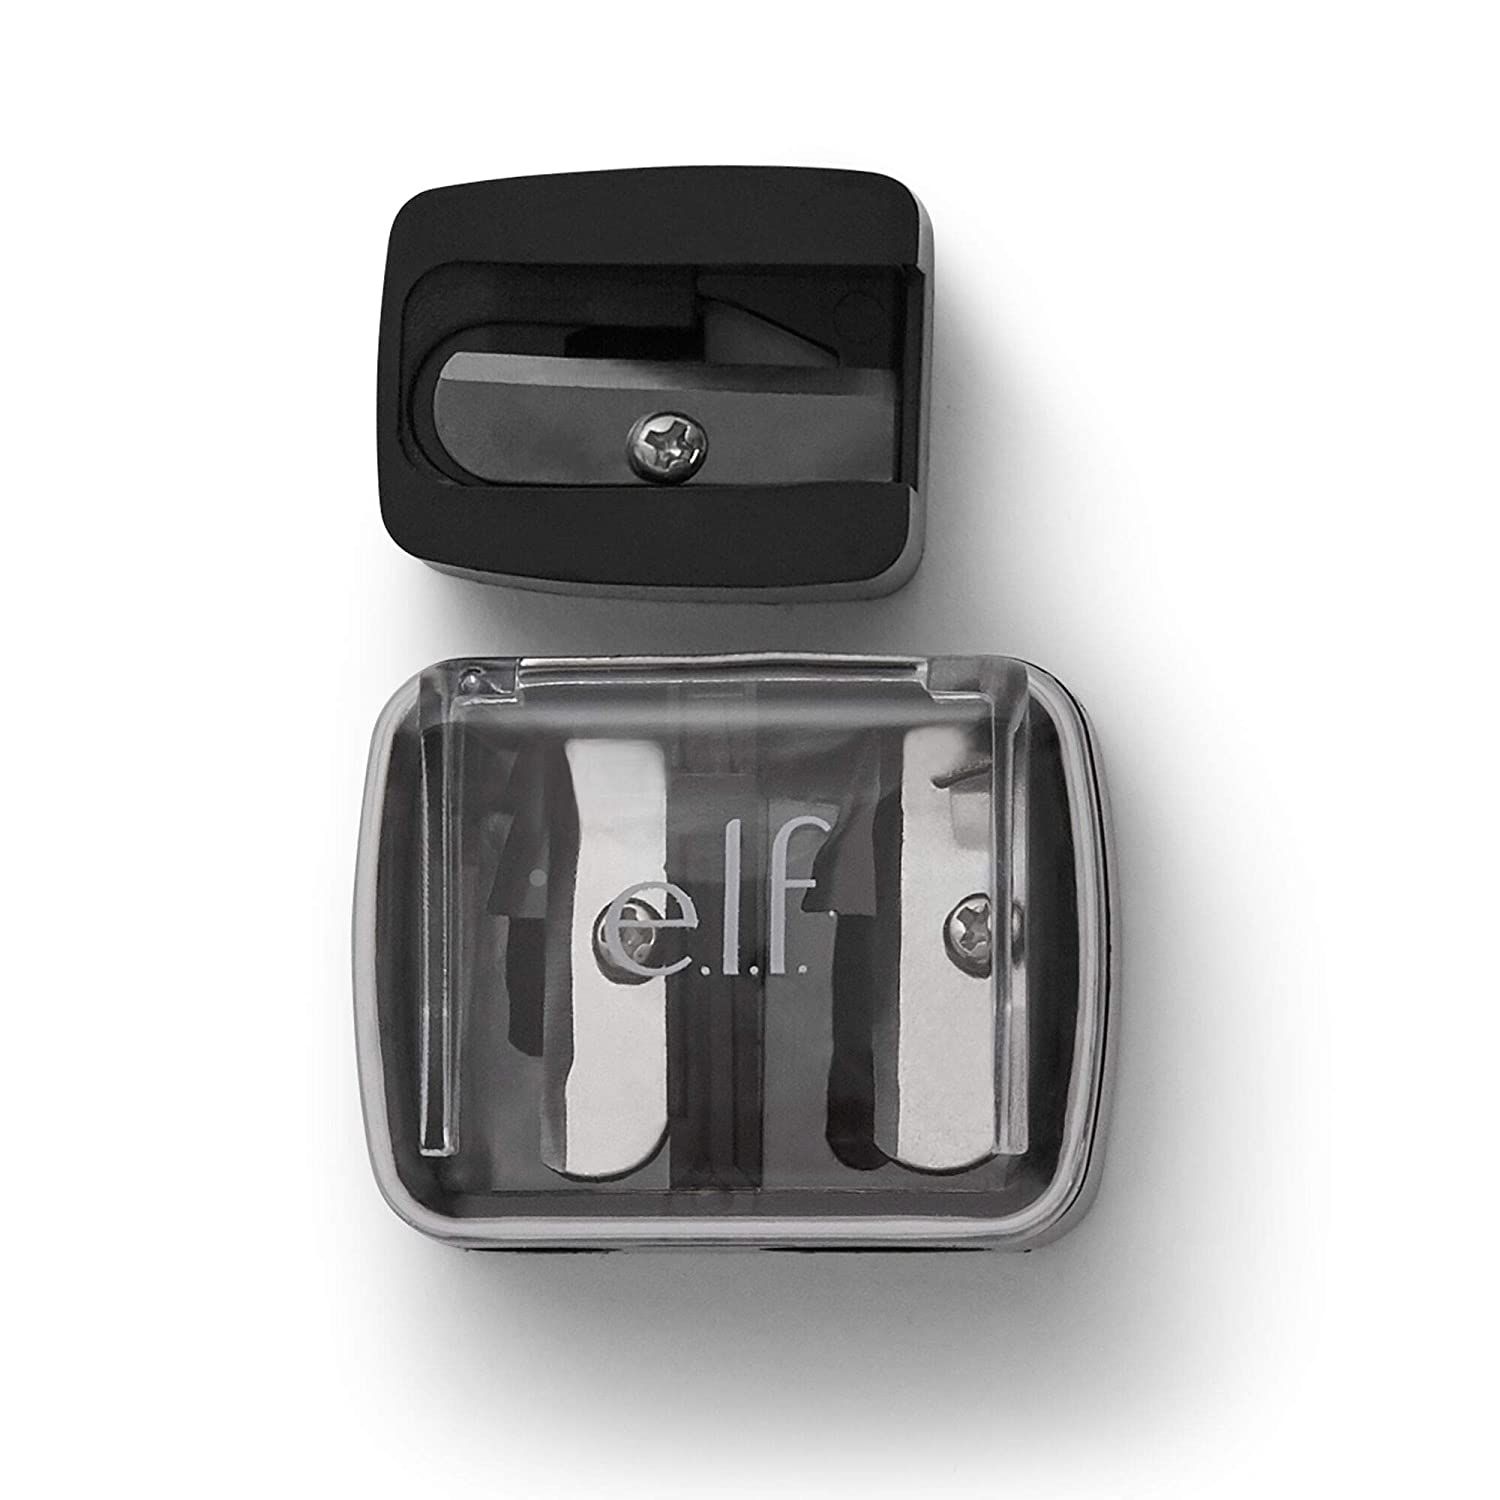 e.l.f, Dual-Pencil Sharpener, Convenient, Essential Tool, Sharpens, Easy To Clean, Travel-Friendly, Compact : Beauty